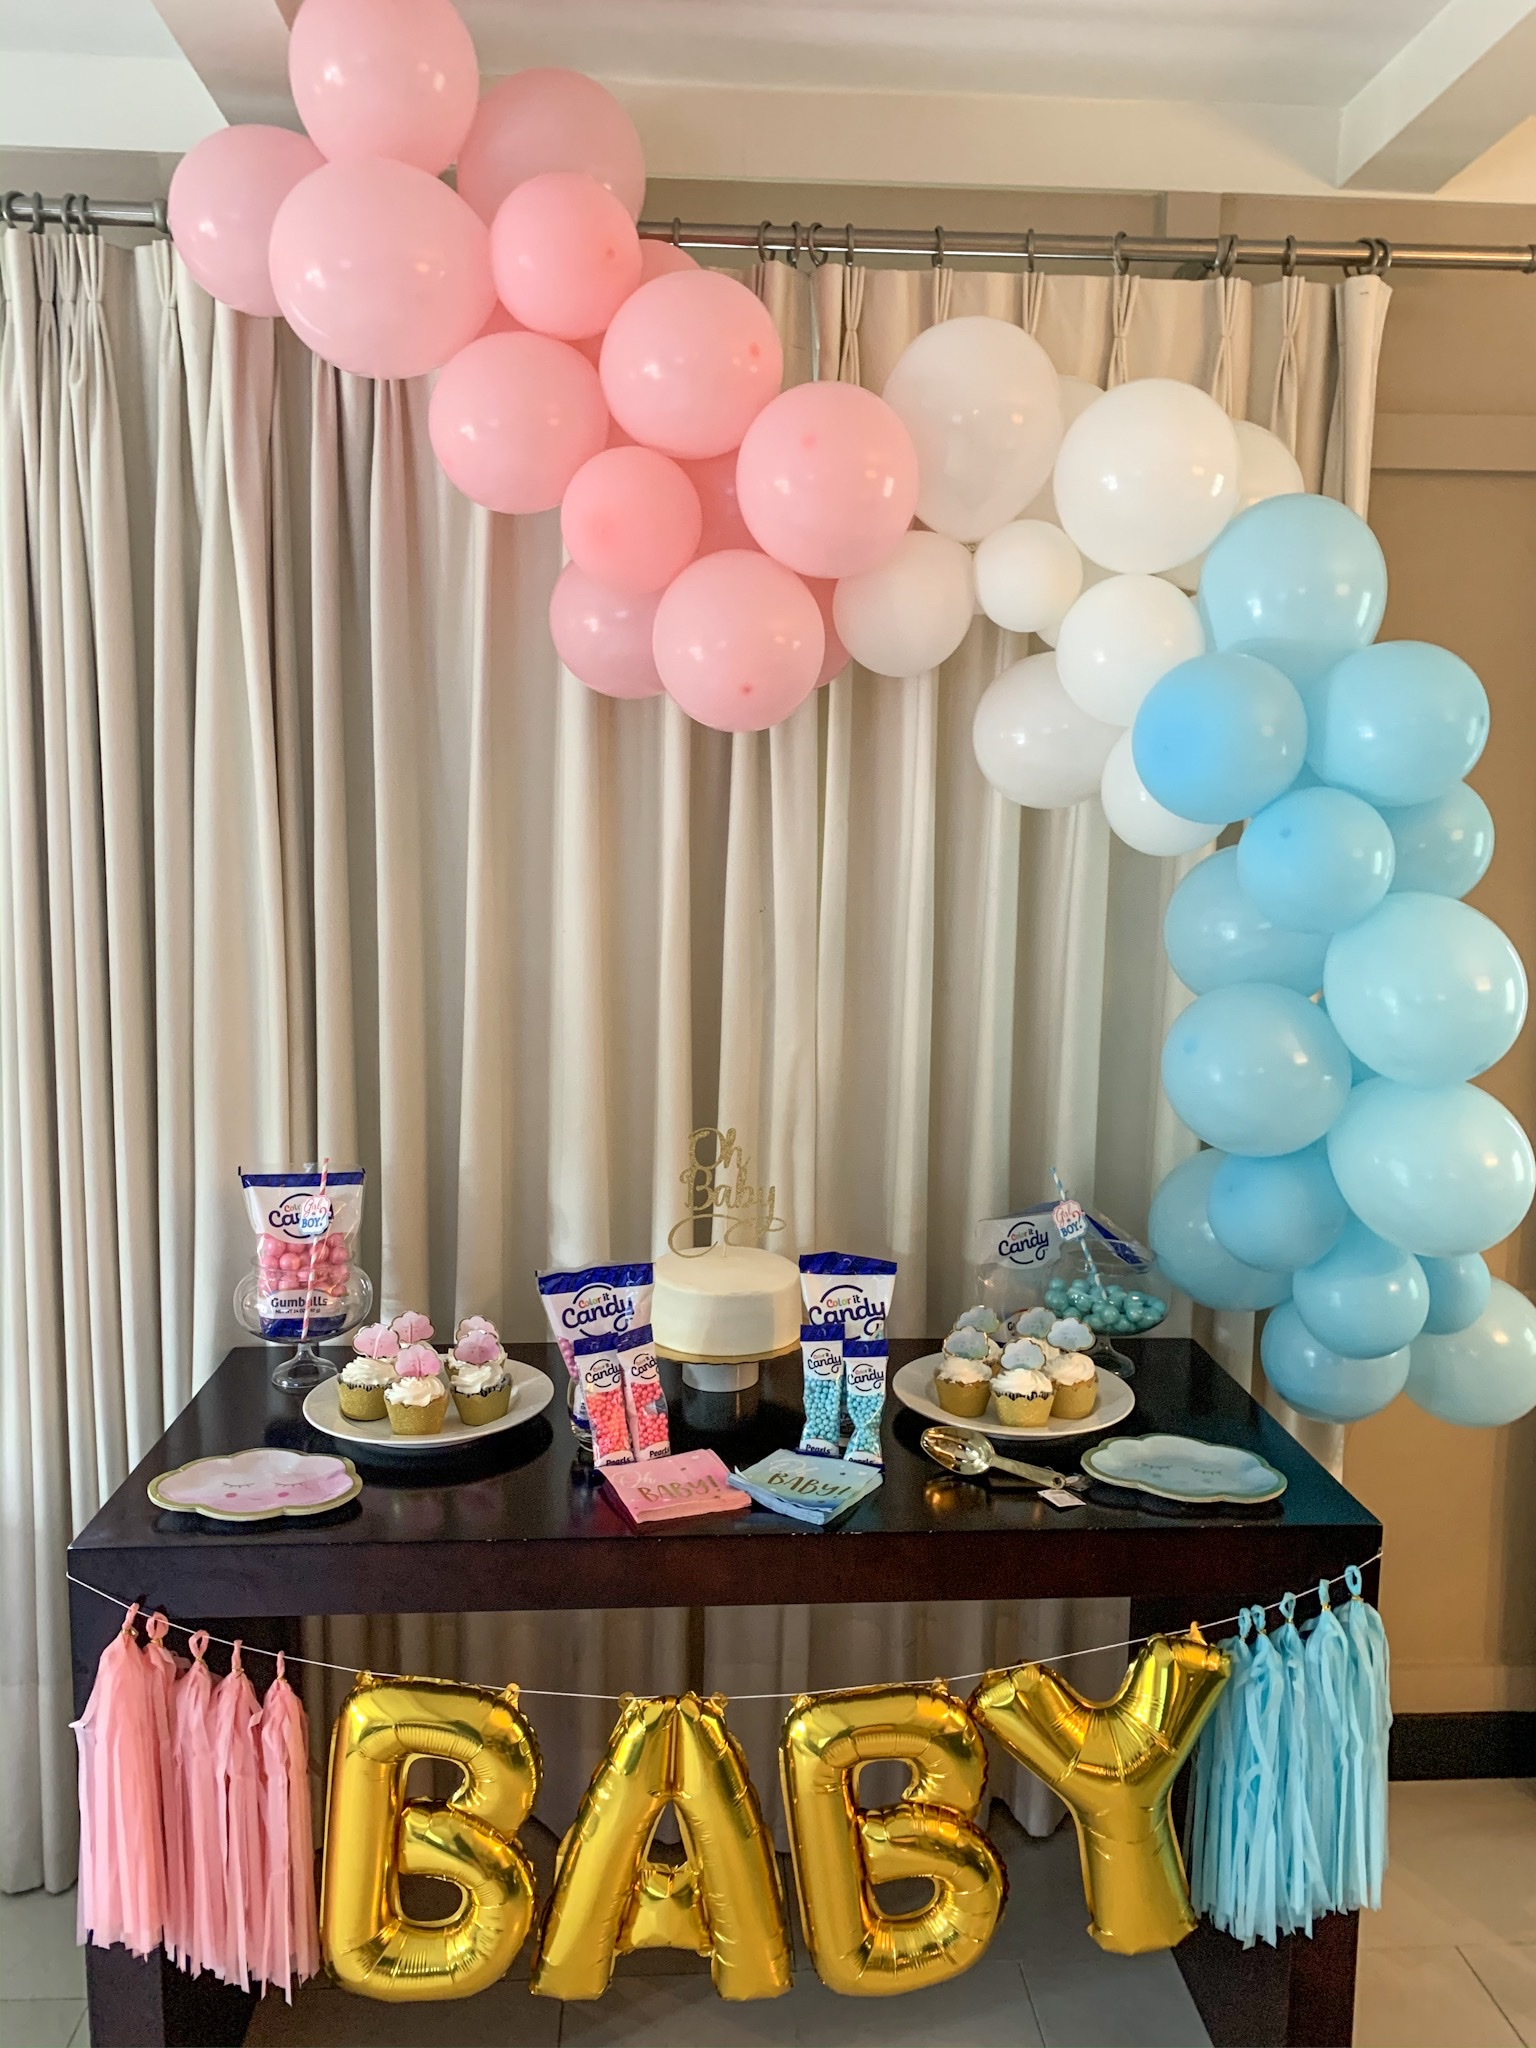 Gender Reveal Party Table Decorations  from i1.wp.com